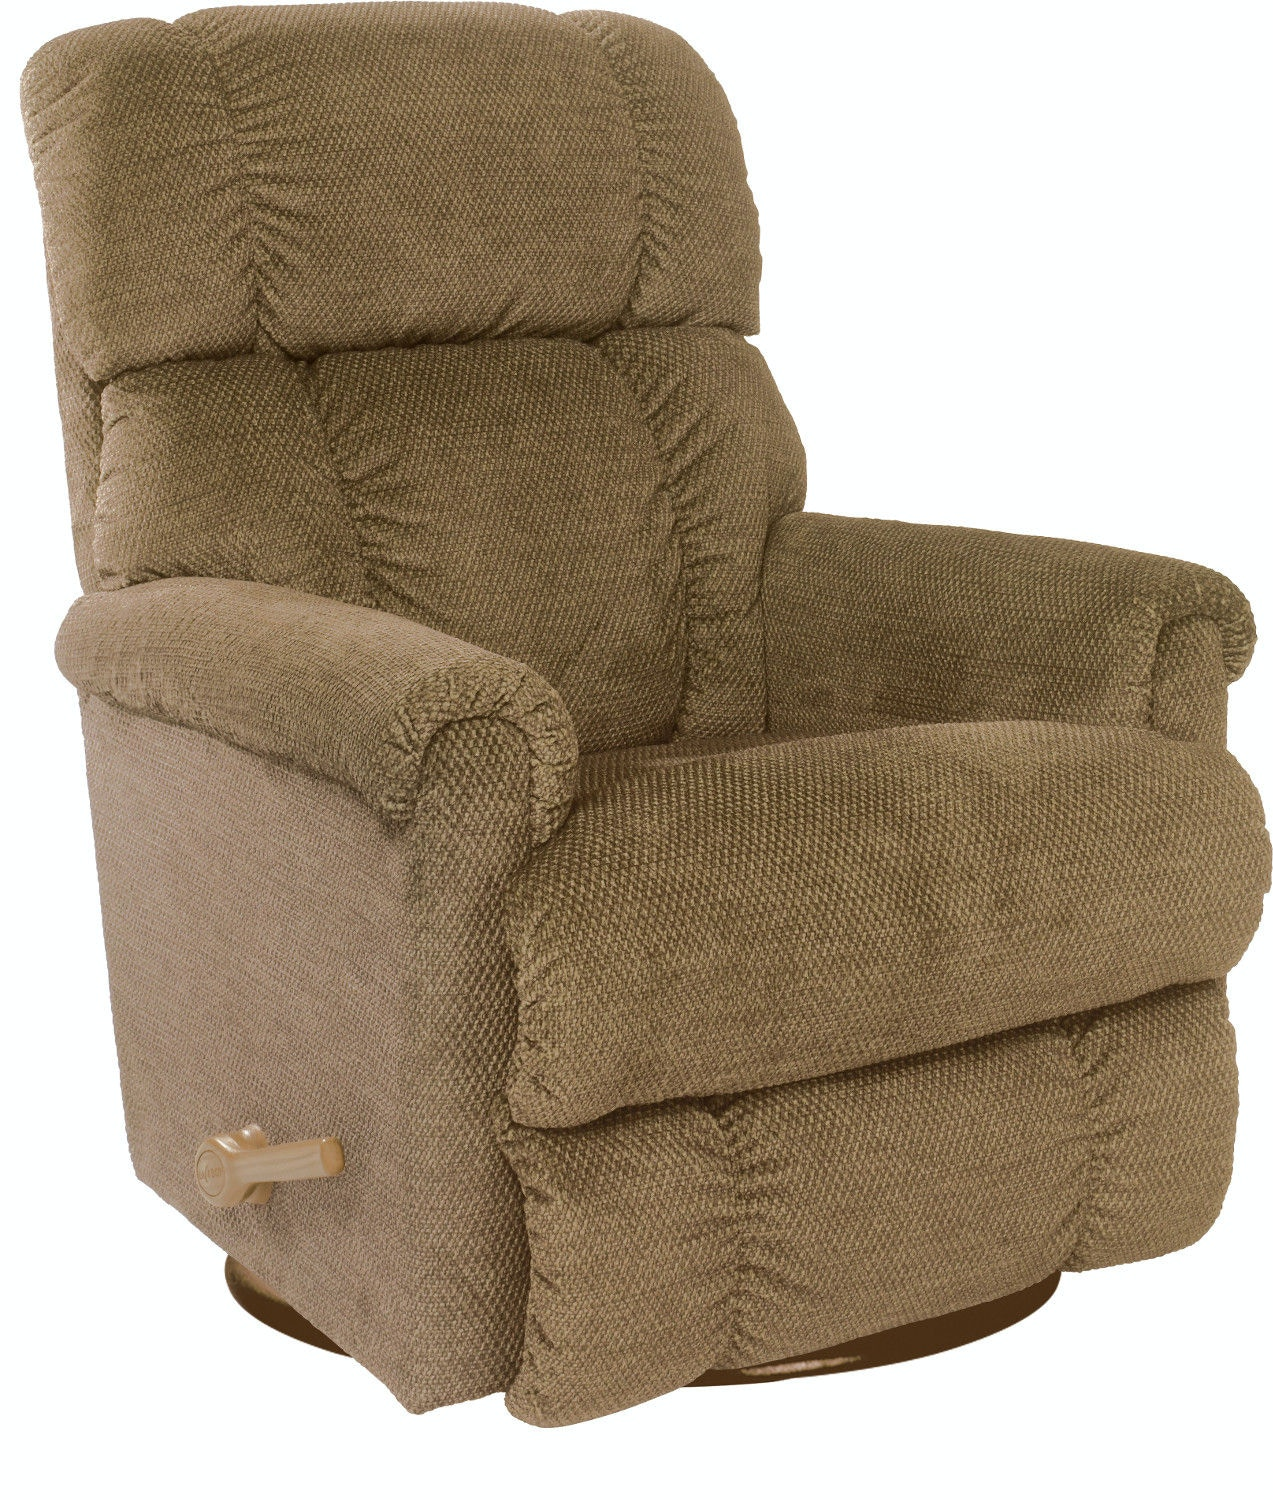 la z boy lift chair hand control patio glide replacement living room reclina glider swivel recliner